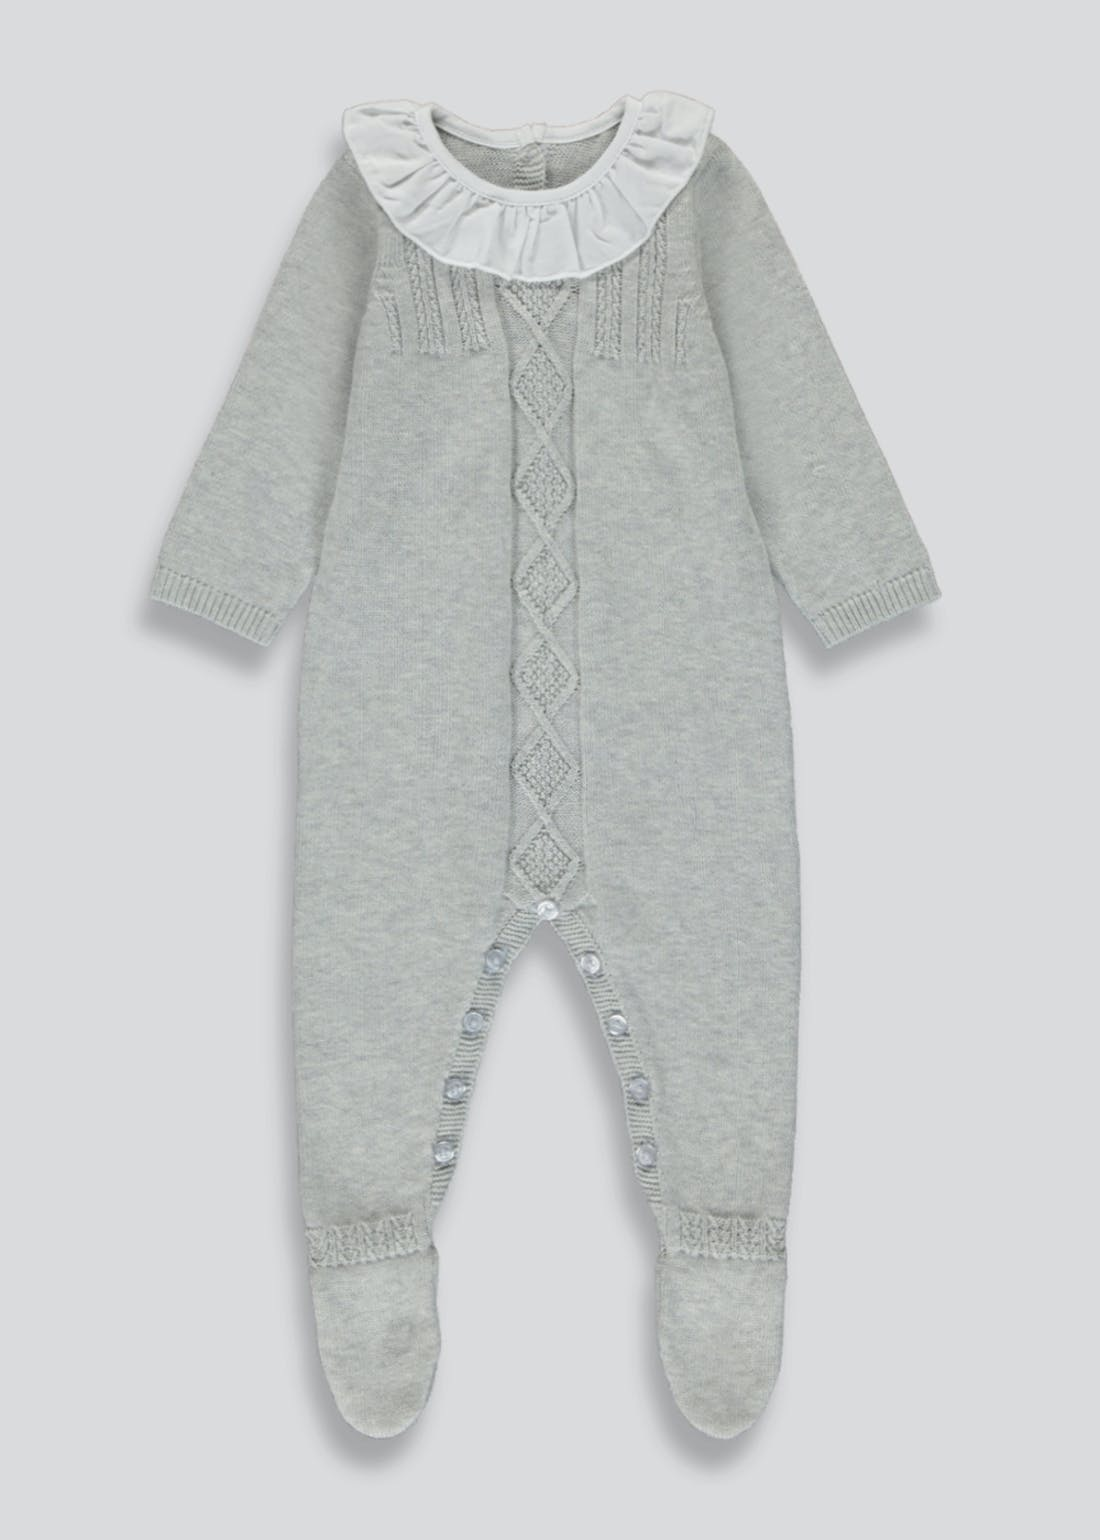 Unisex Knitted Frill Neck Romper (Tiny Baby-18mths)